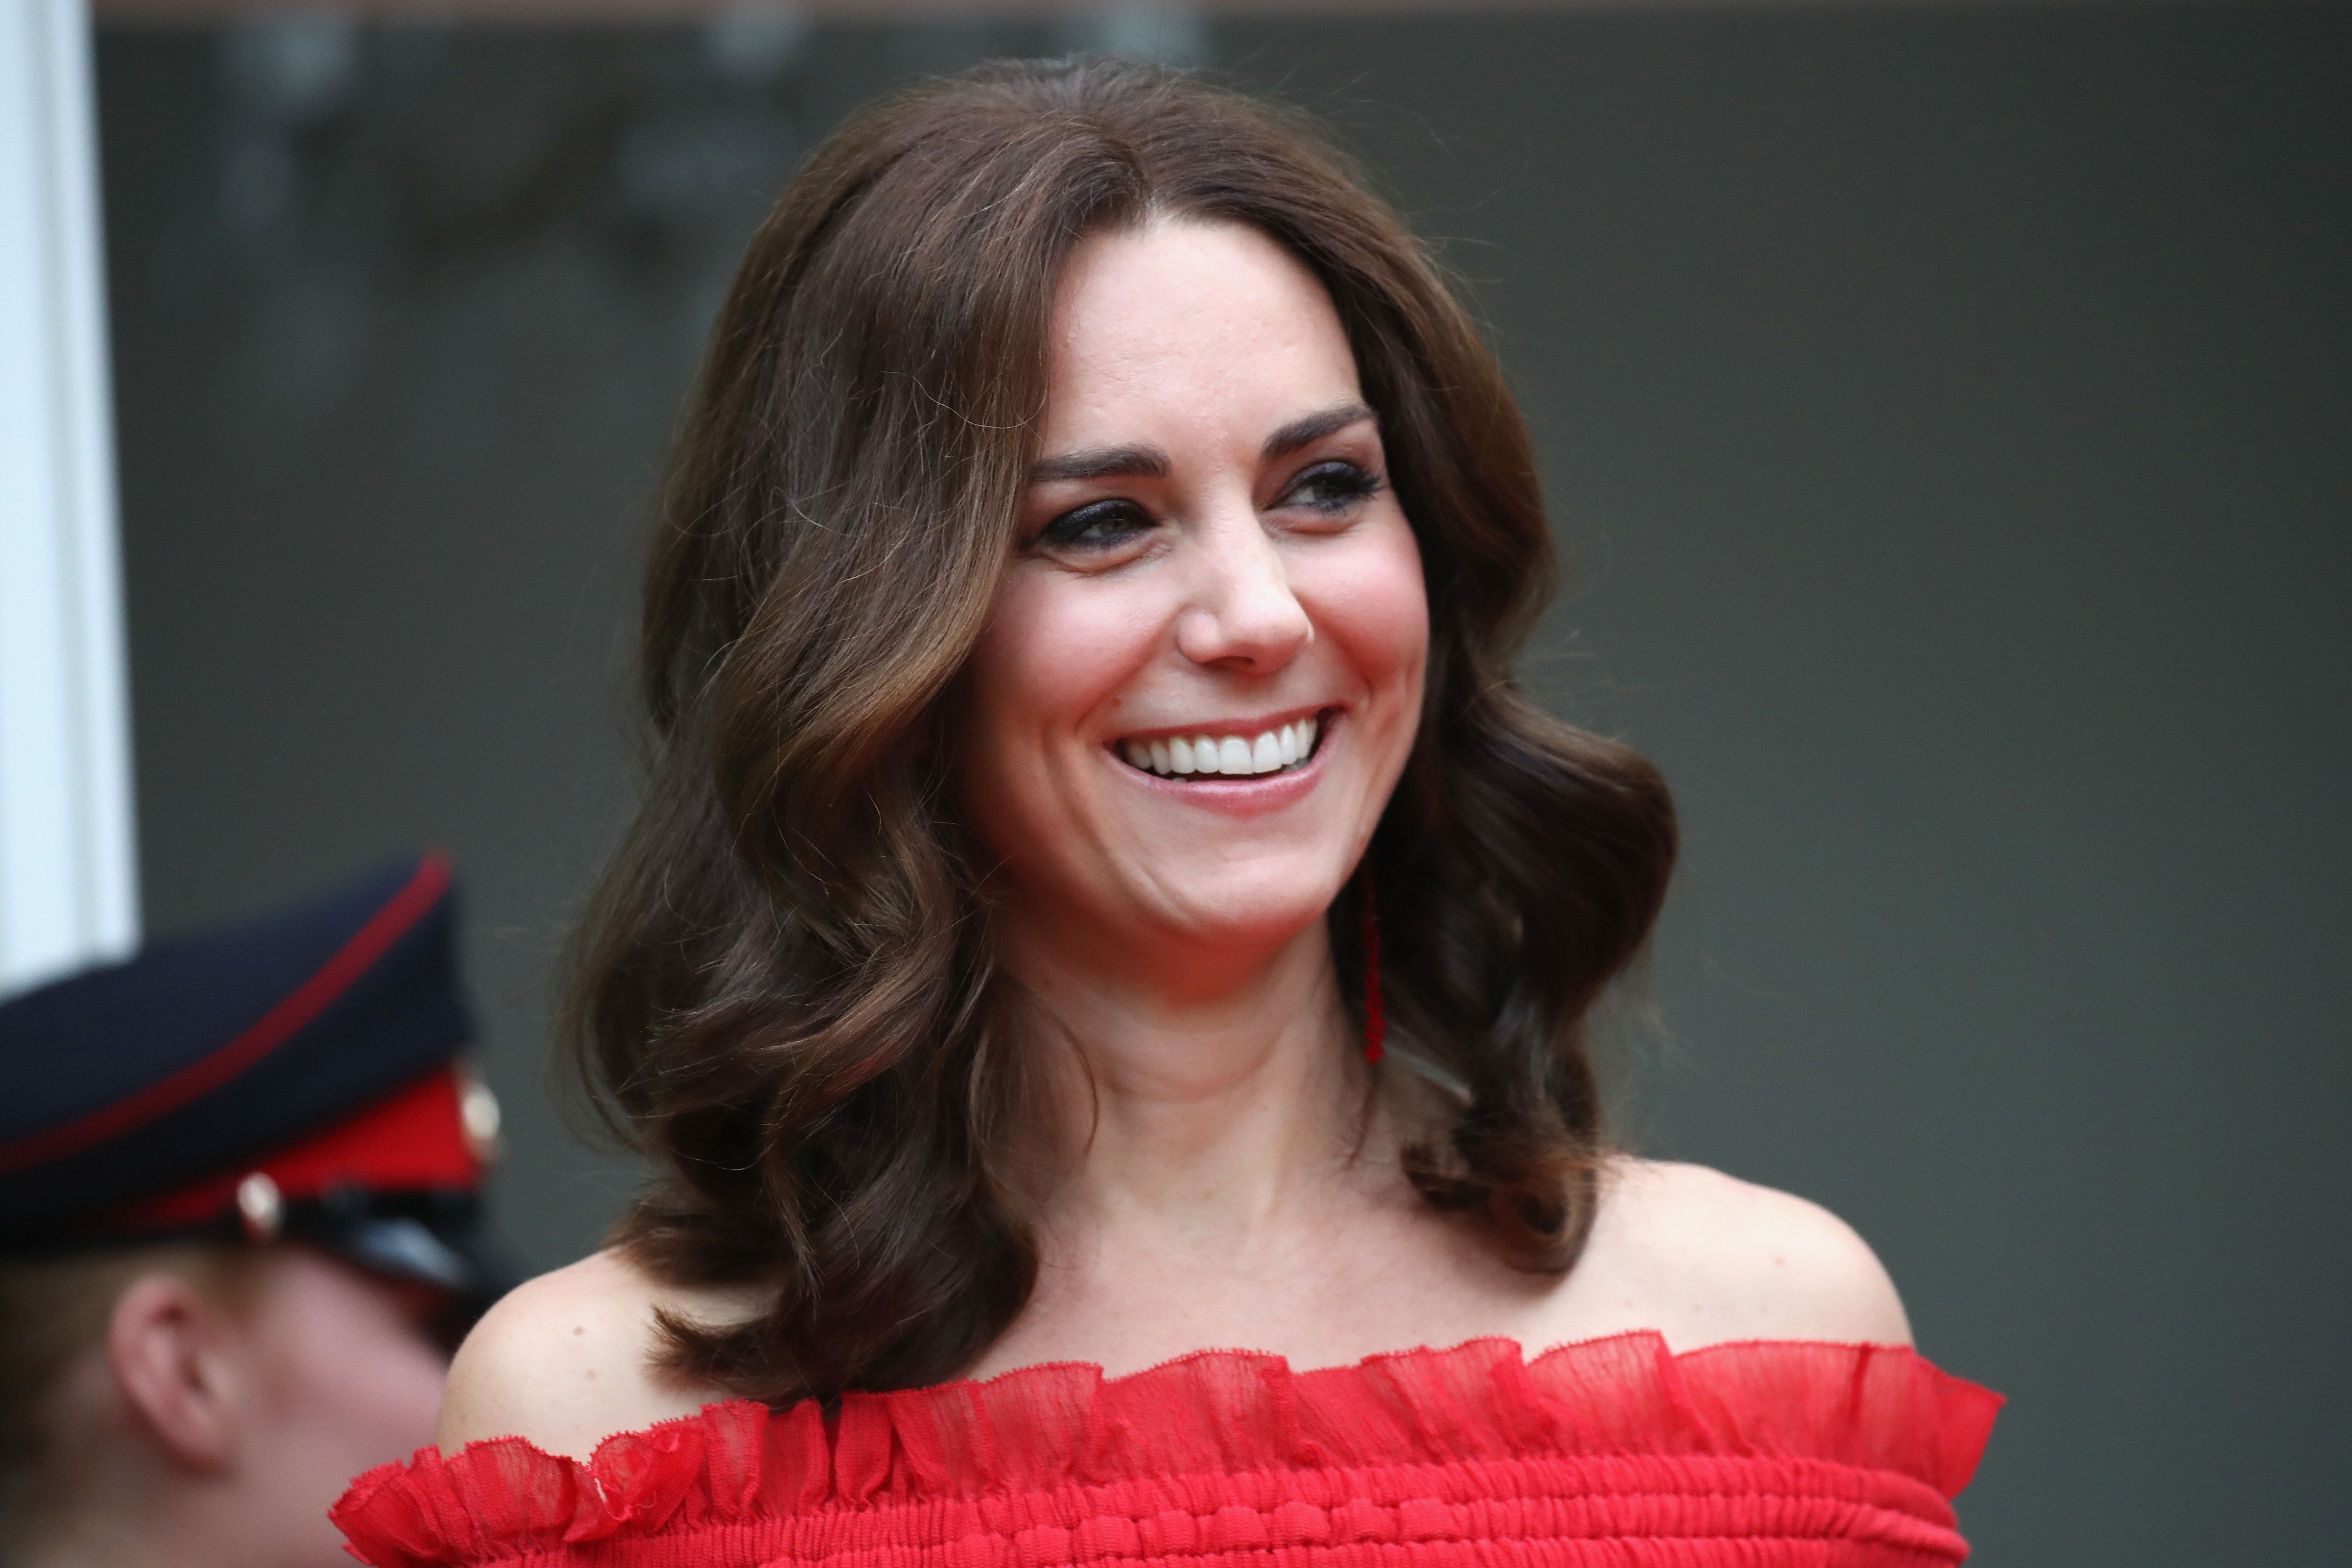 The Duchess Of Cambridge Makes A Bold Style Statement In Off-The-Shoulder Alexander